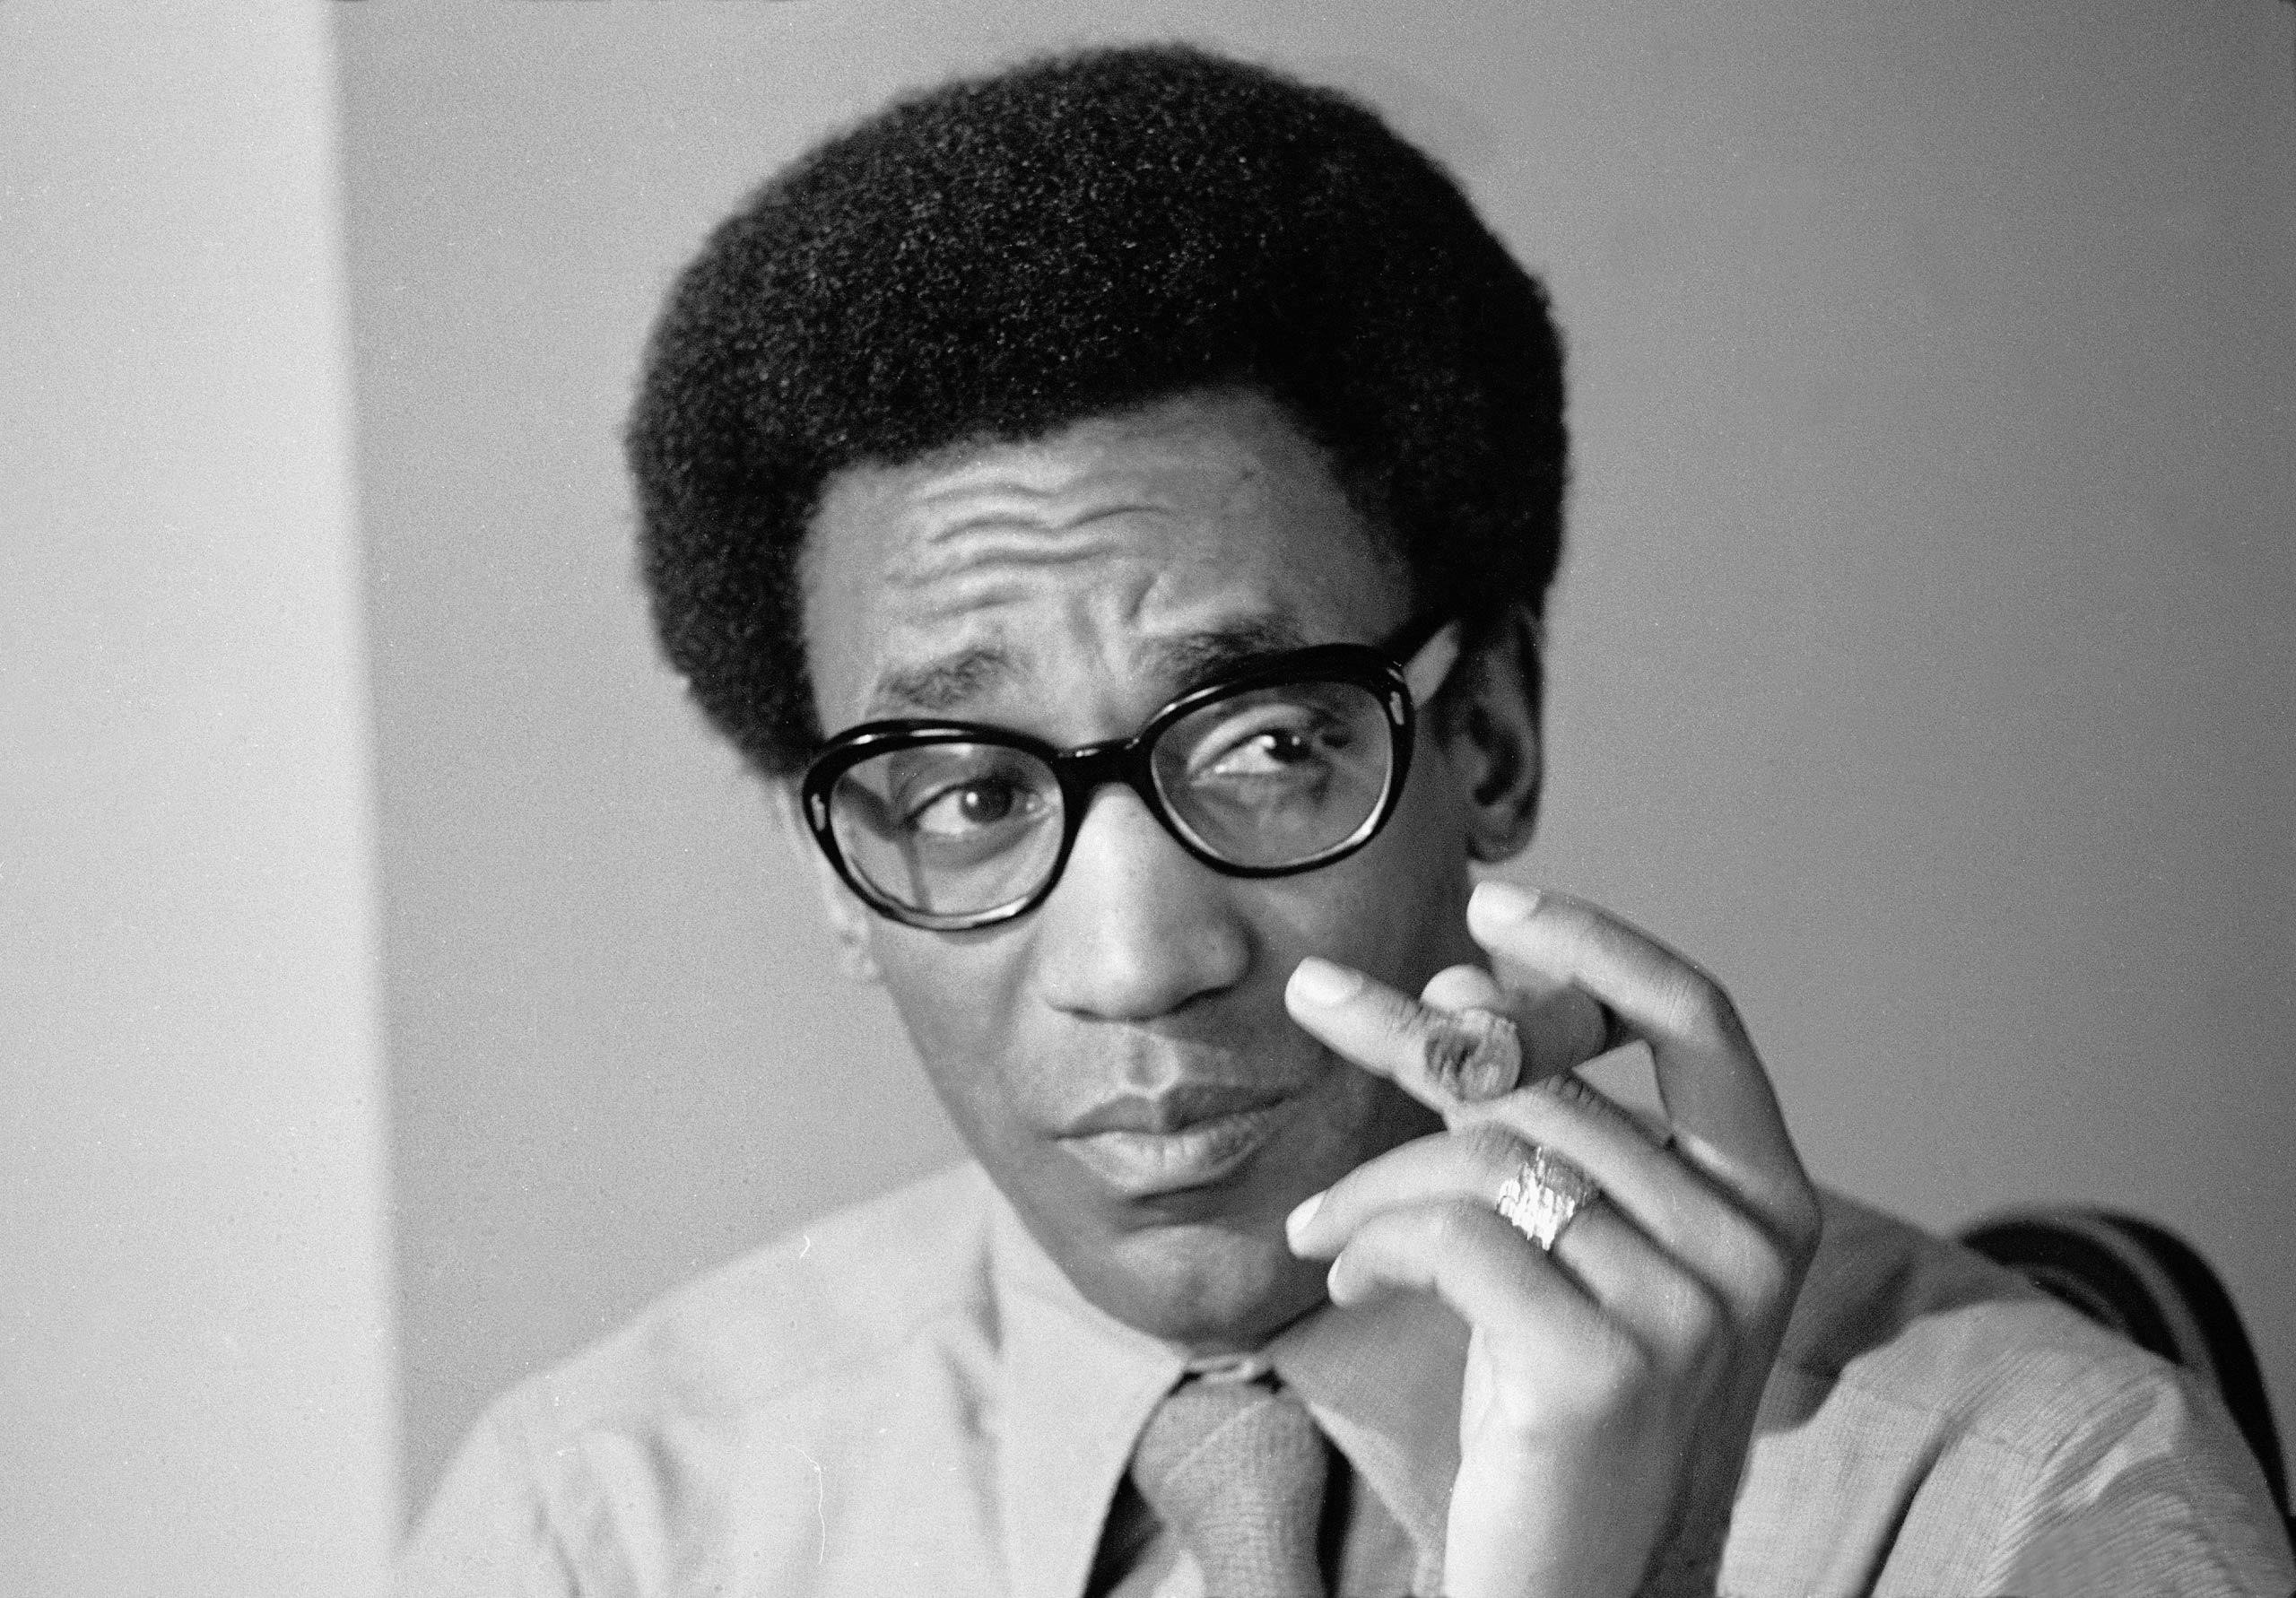 A portrait of Bill Cosby taken in 1969.